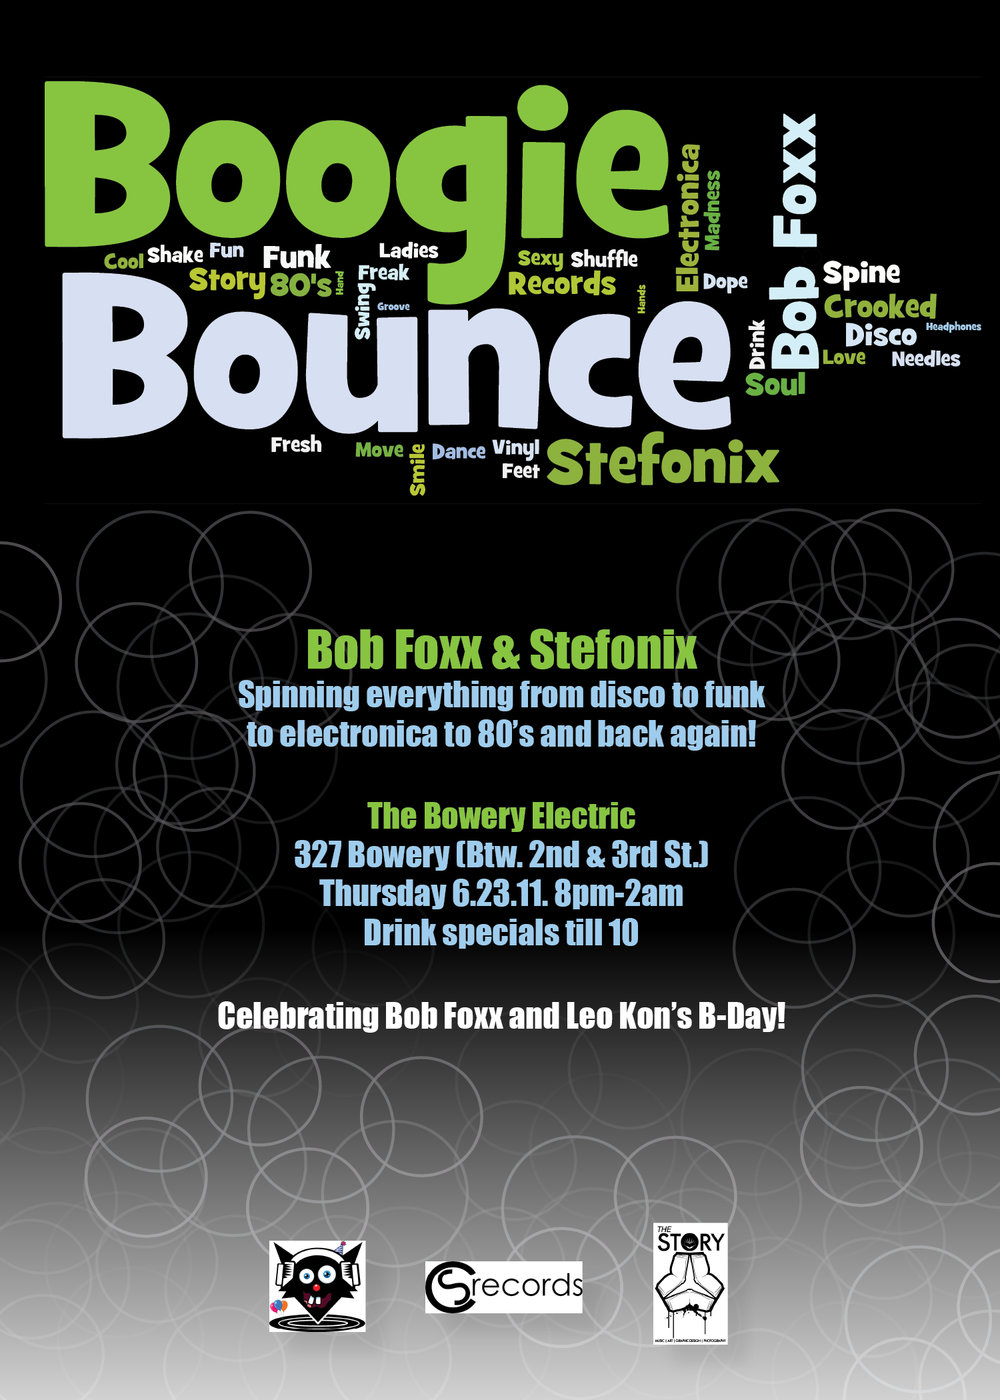 Boogie_Bounce_Flyer_v.1_UPDATE.jpg